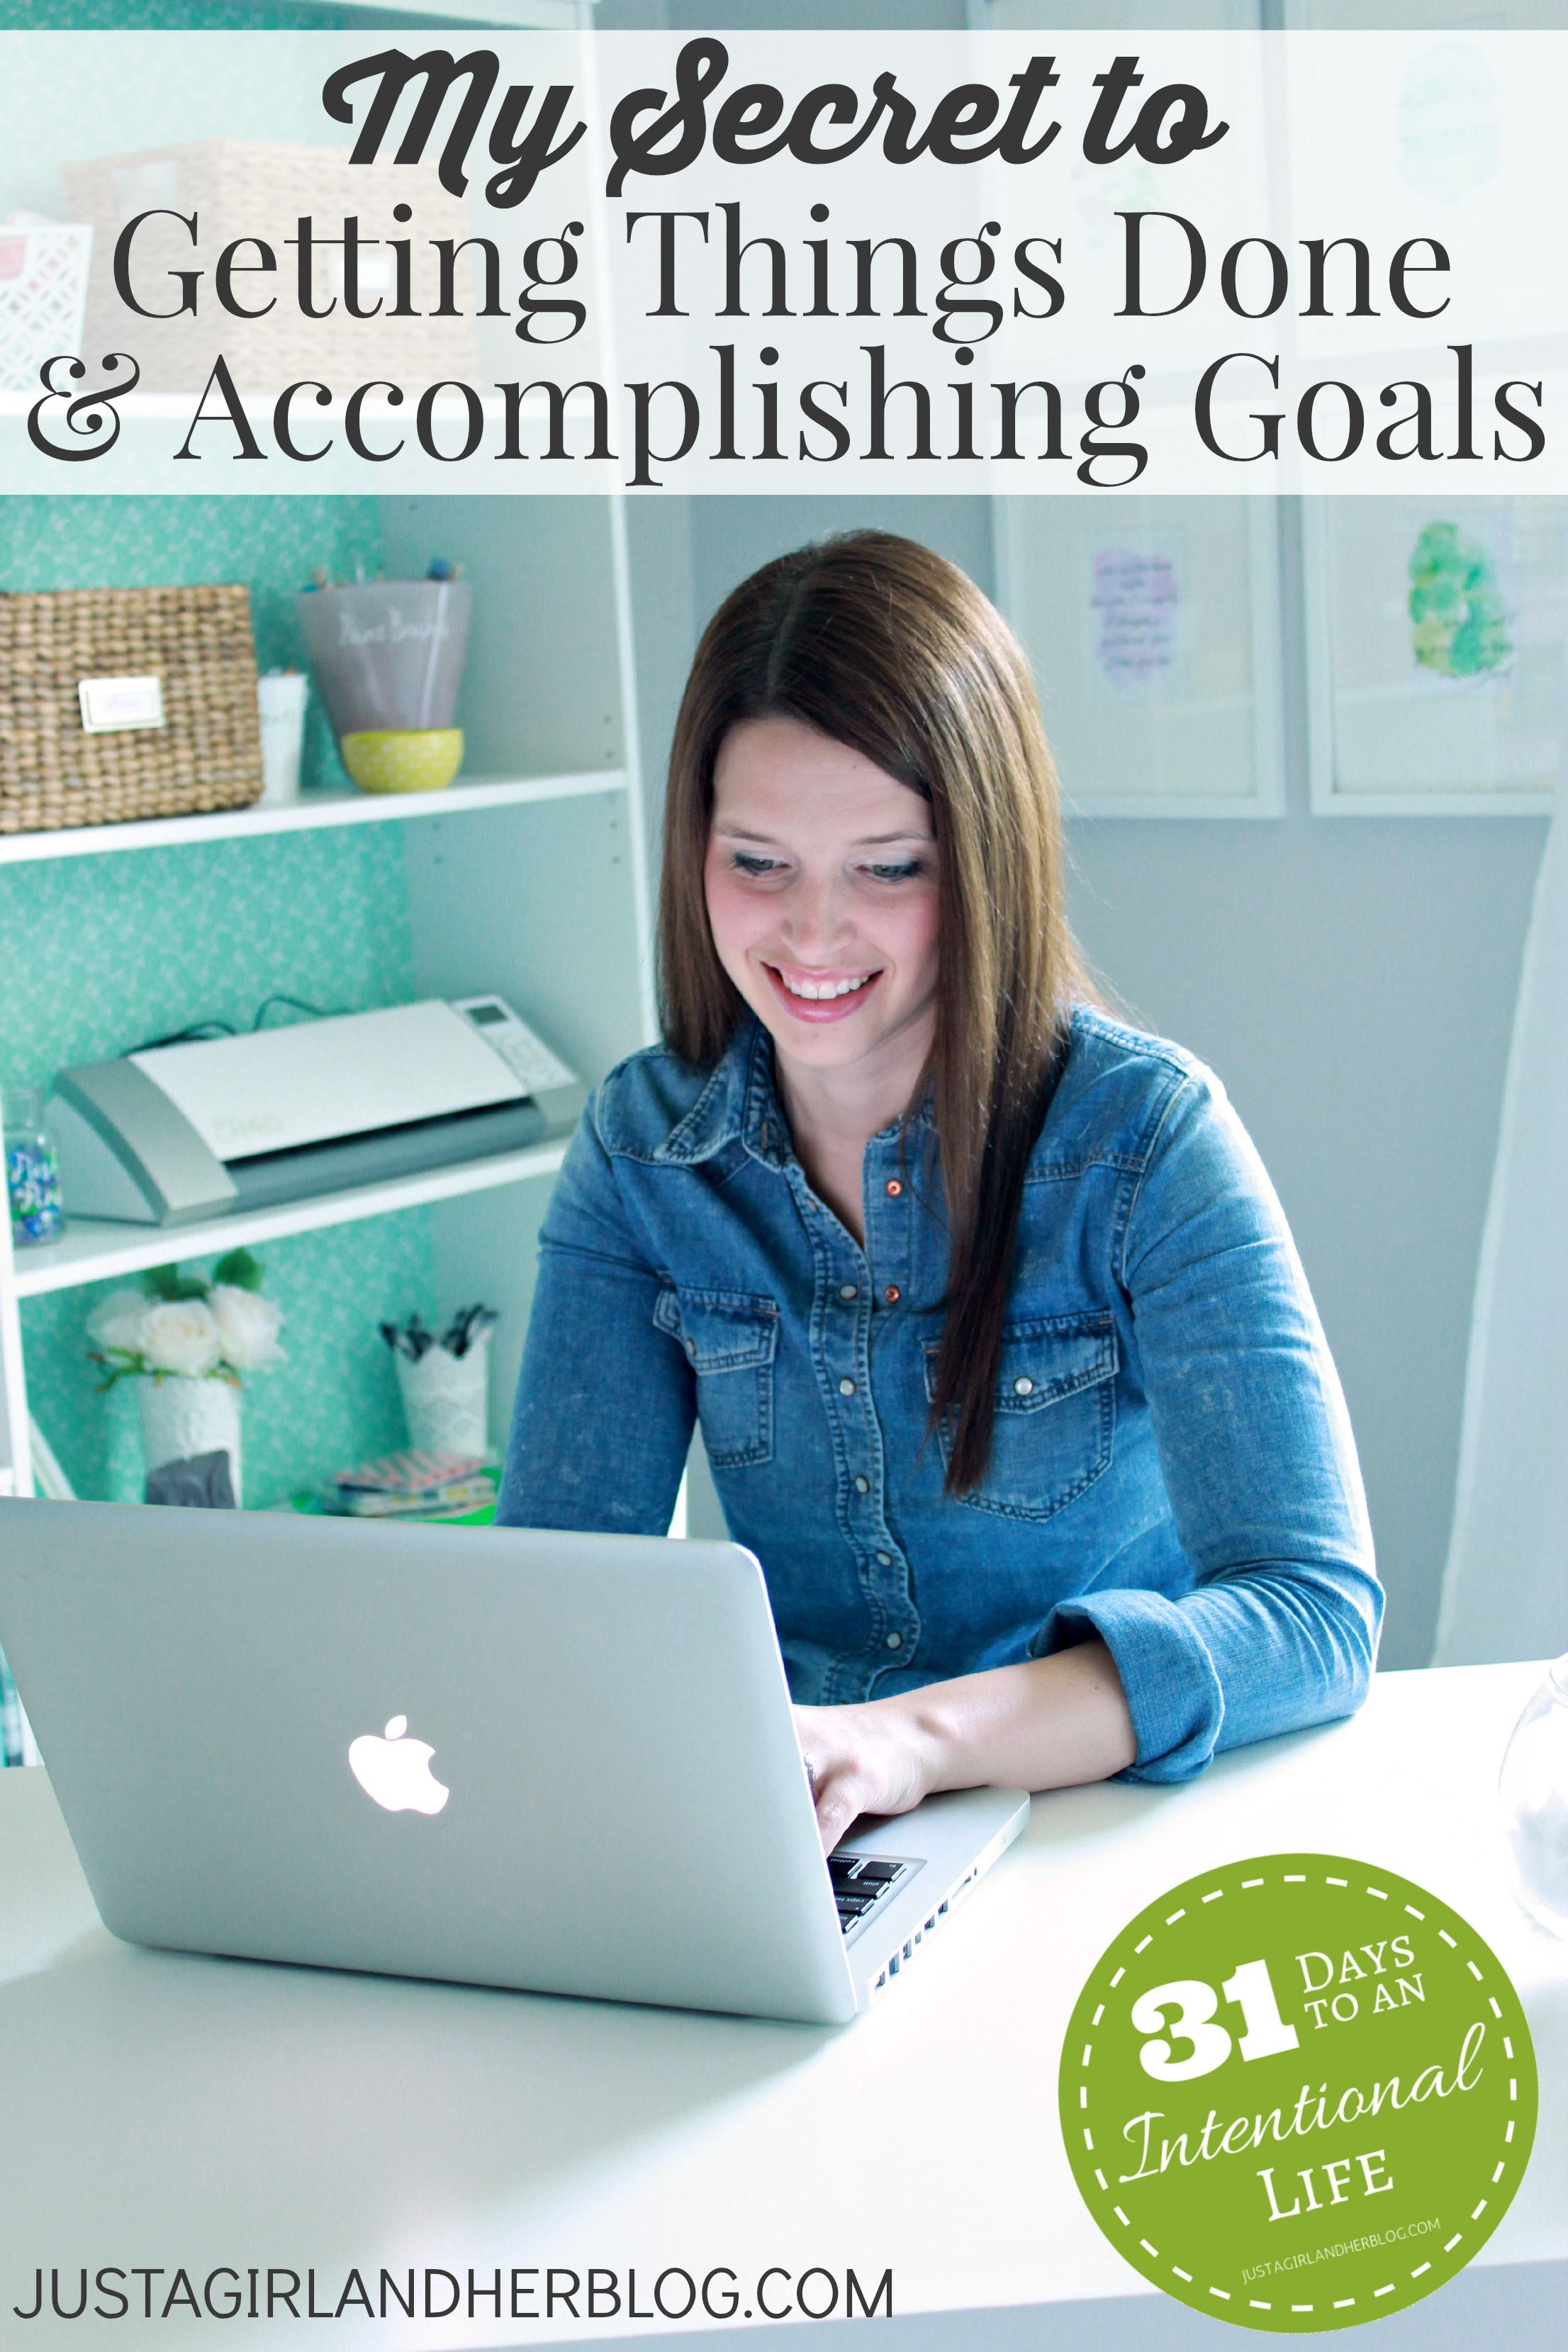 an essay on accomplishing my goals Goals essay i have three main goals set for me to accomplish in the next four years hard work and perseverance will help me attain these career goals are set to fulfill and to accomplish desired objectives by writing this essay, one can become more familiar with the process in becoming a.